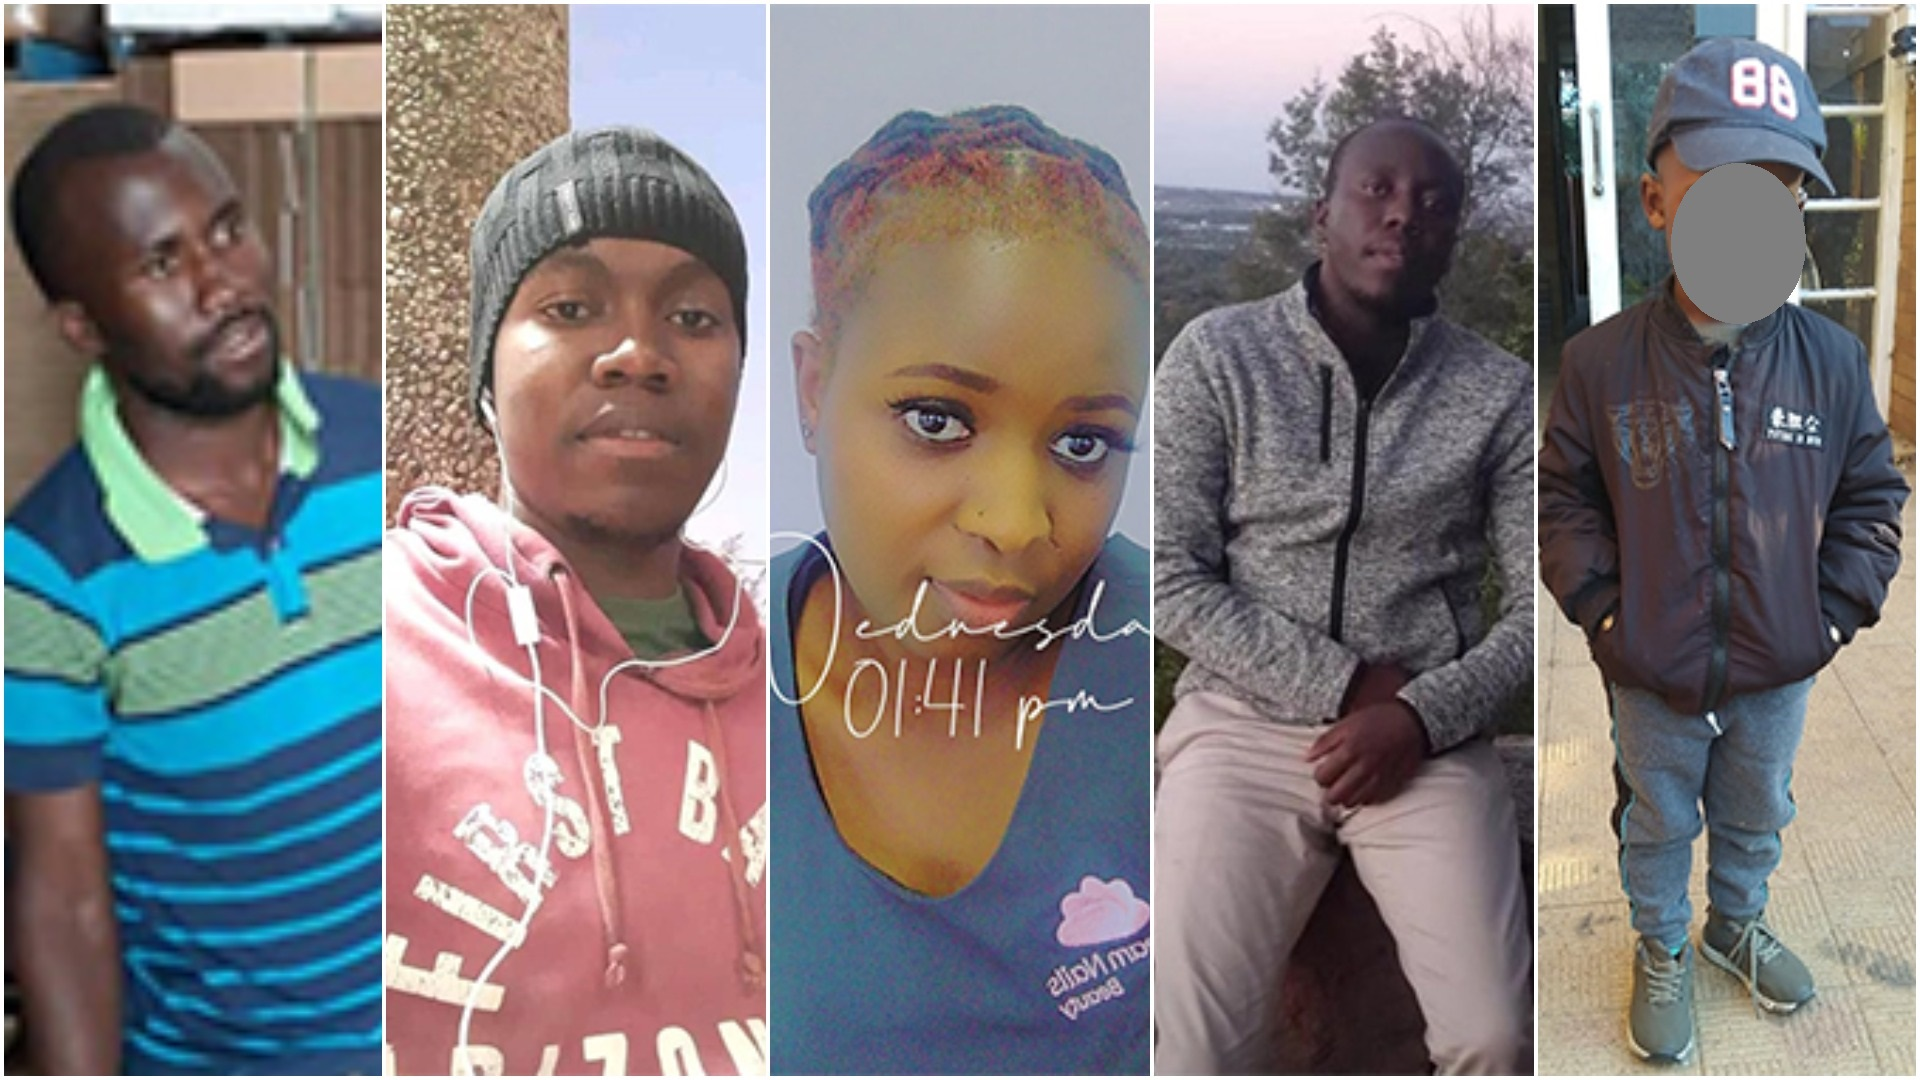 Family Plunged Into Mourning After Five Perish In Horror Crash In South Africa